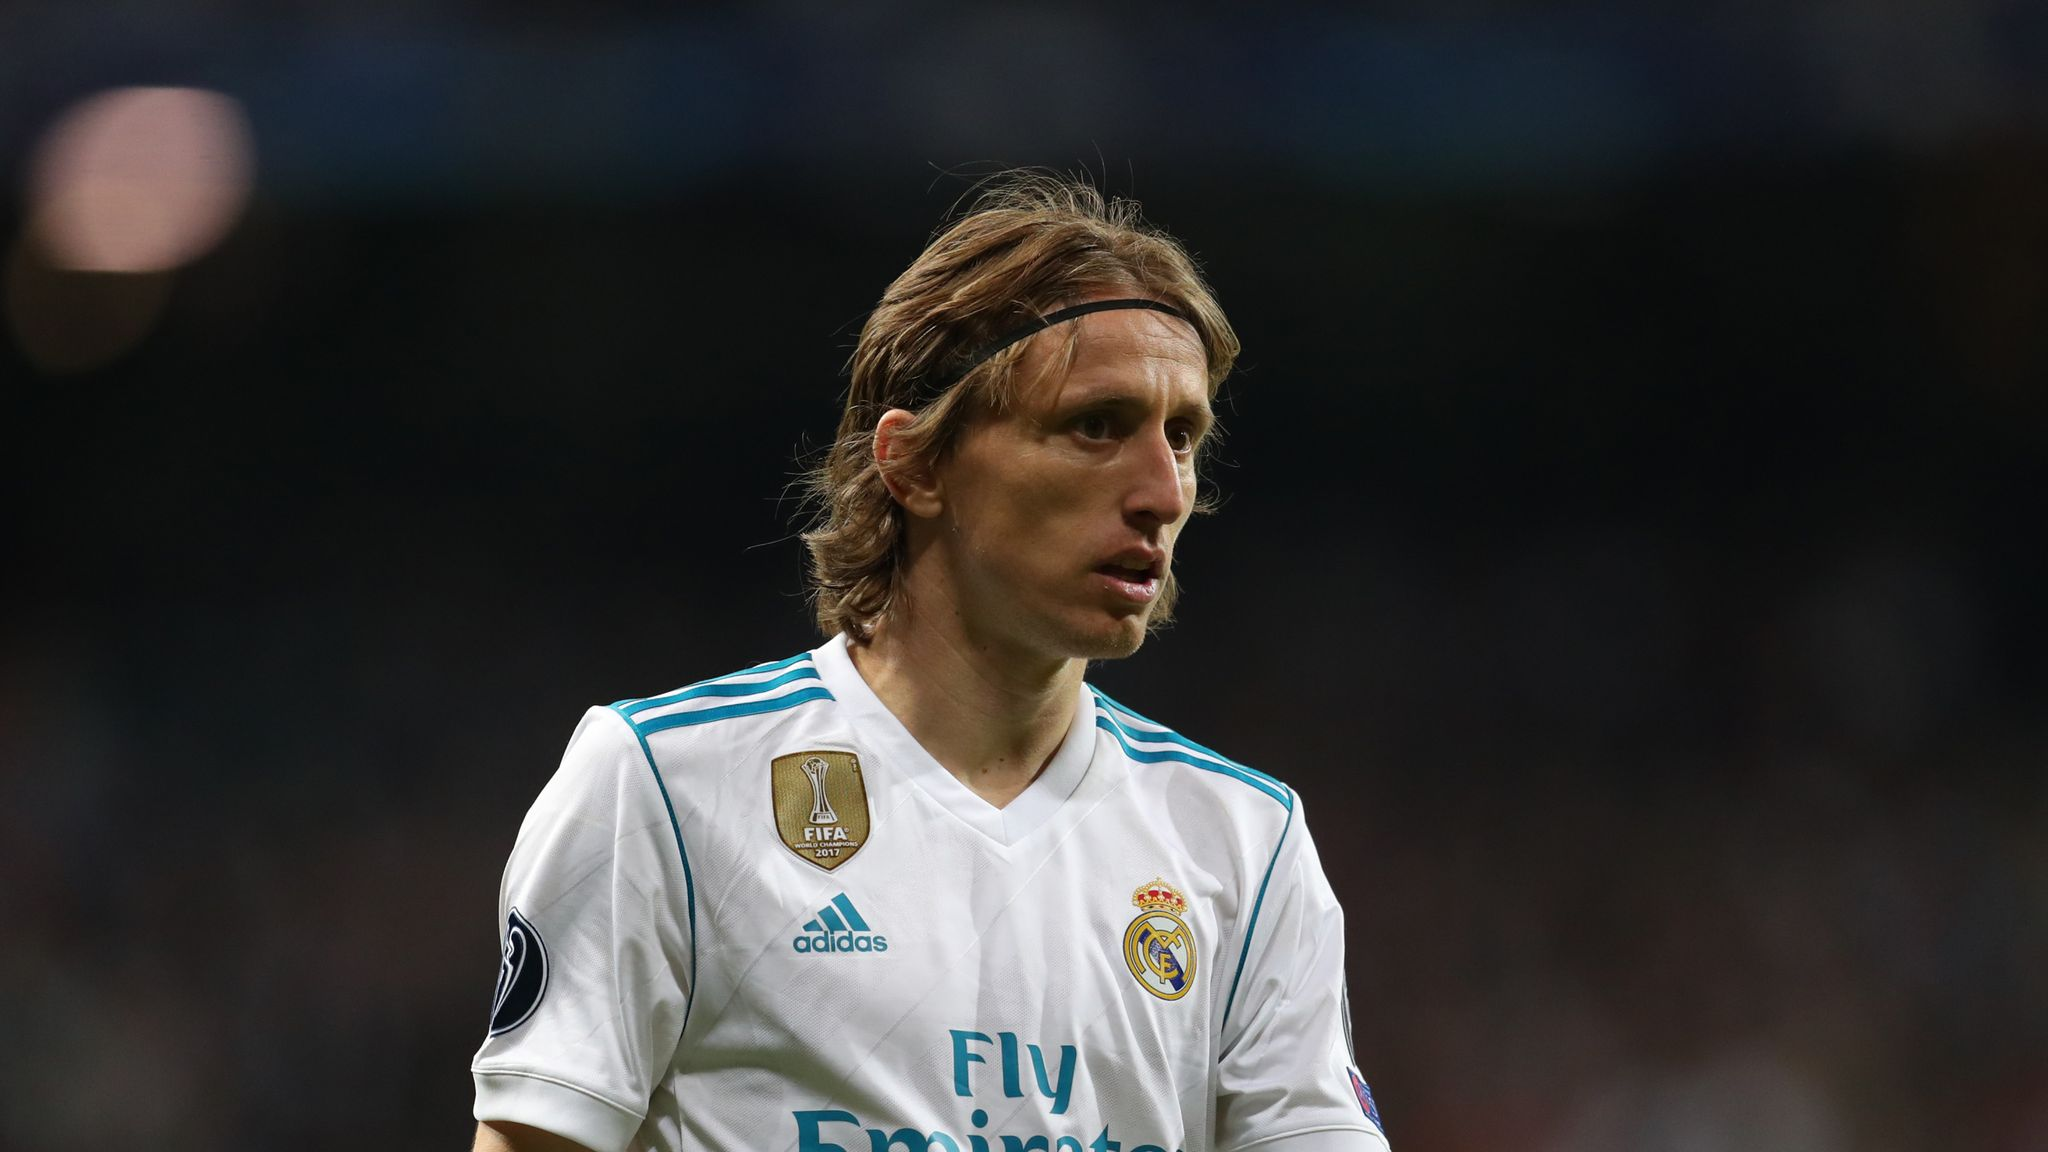 newest 02fb4 ae575 Real Madrid's Luka Modric wants Inter Milan move | Football ...